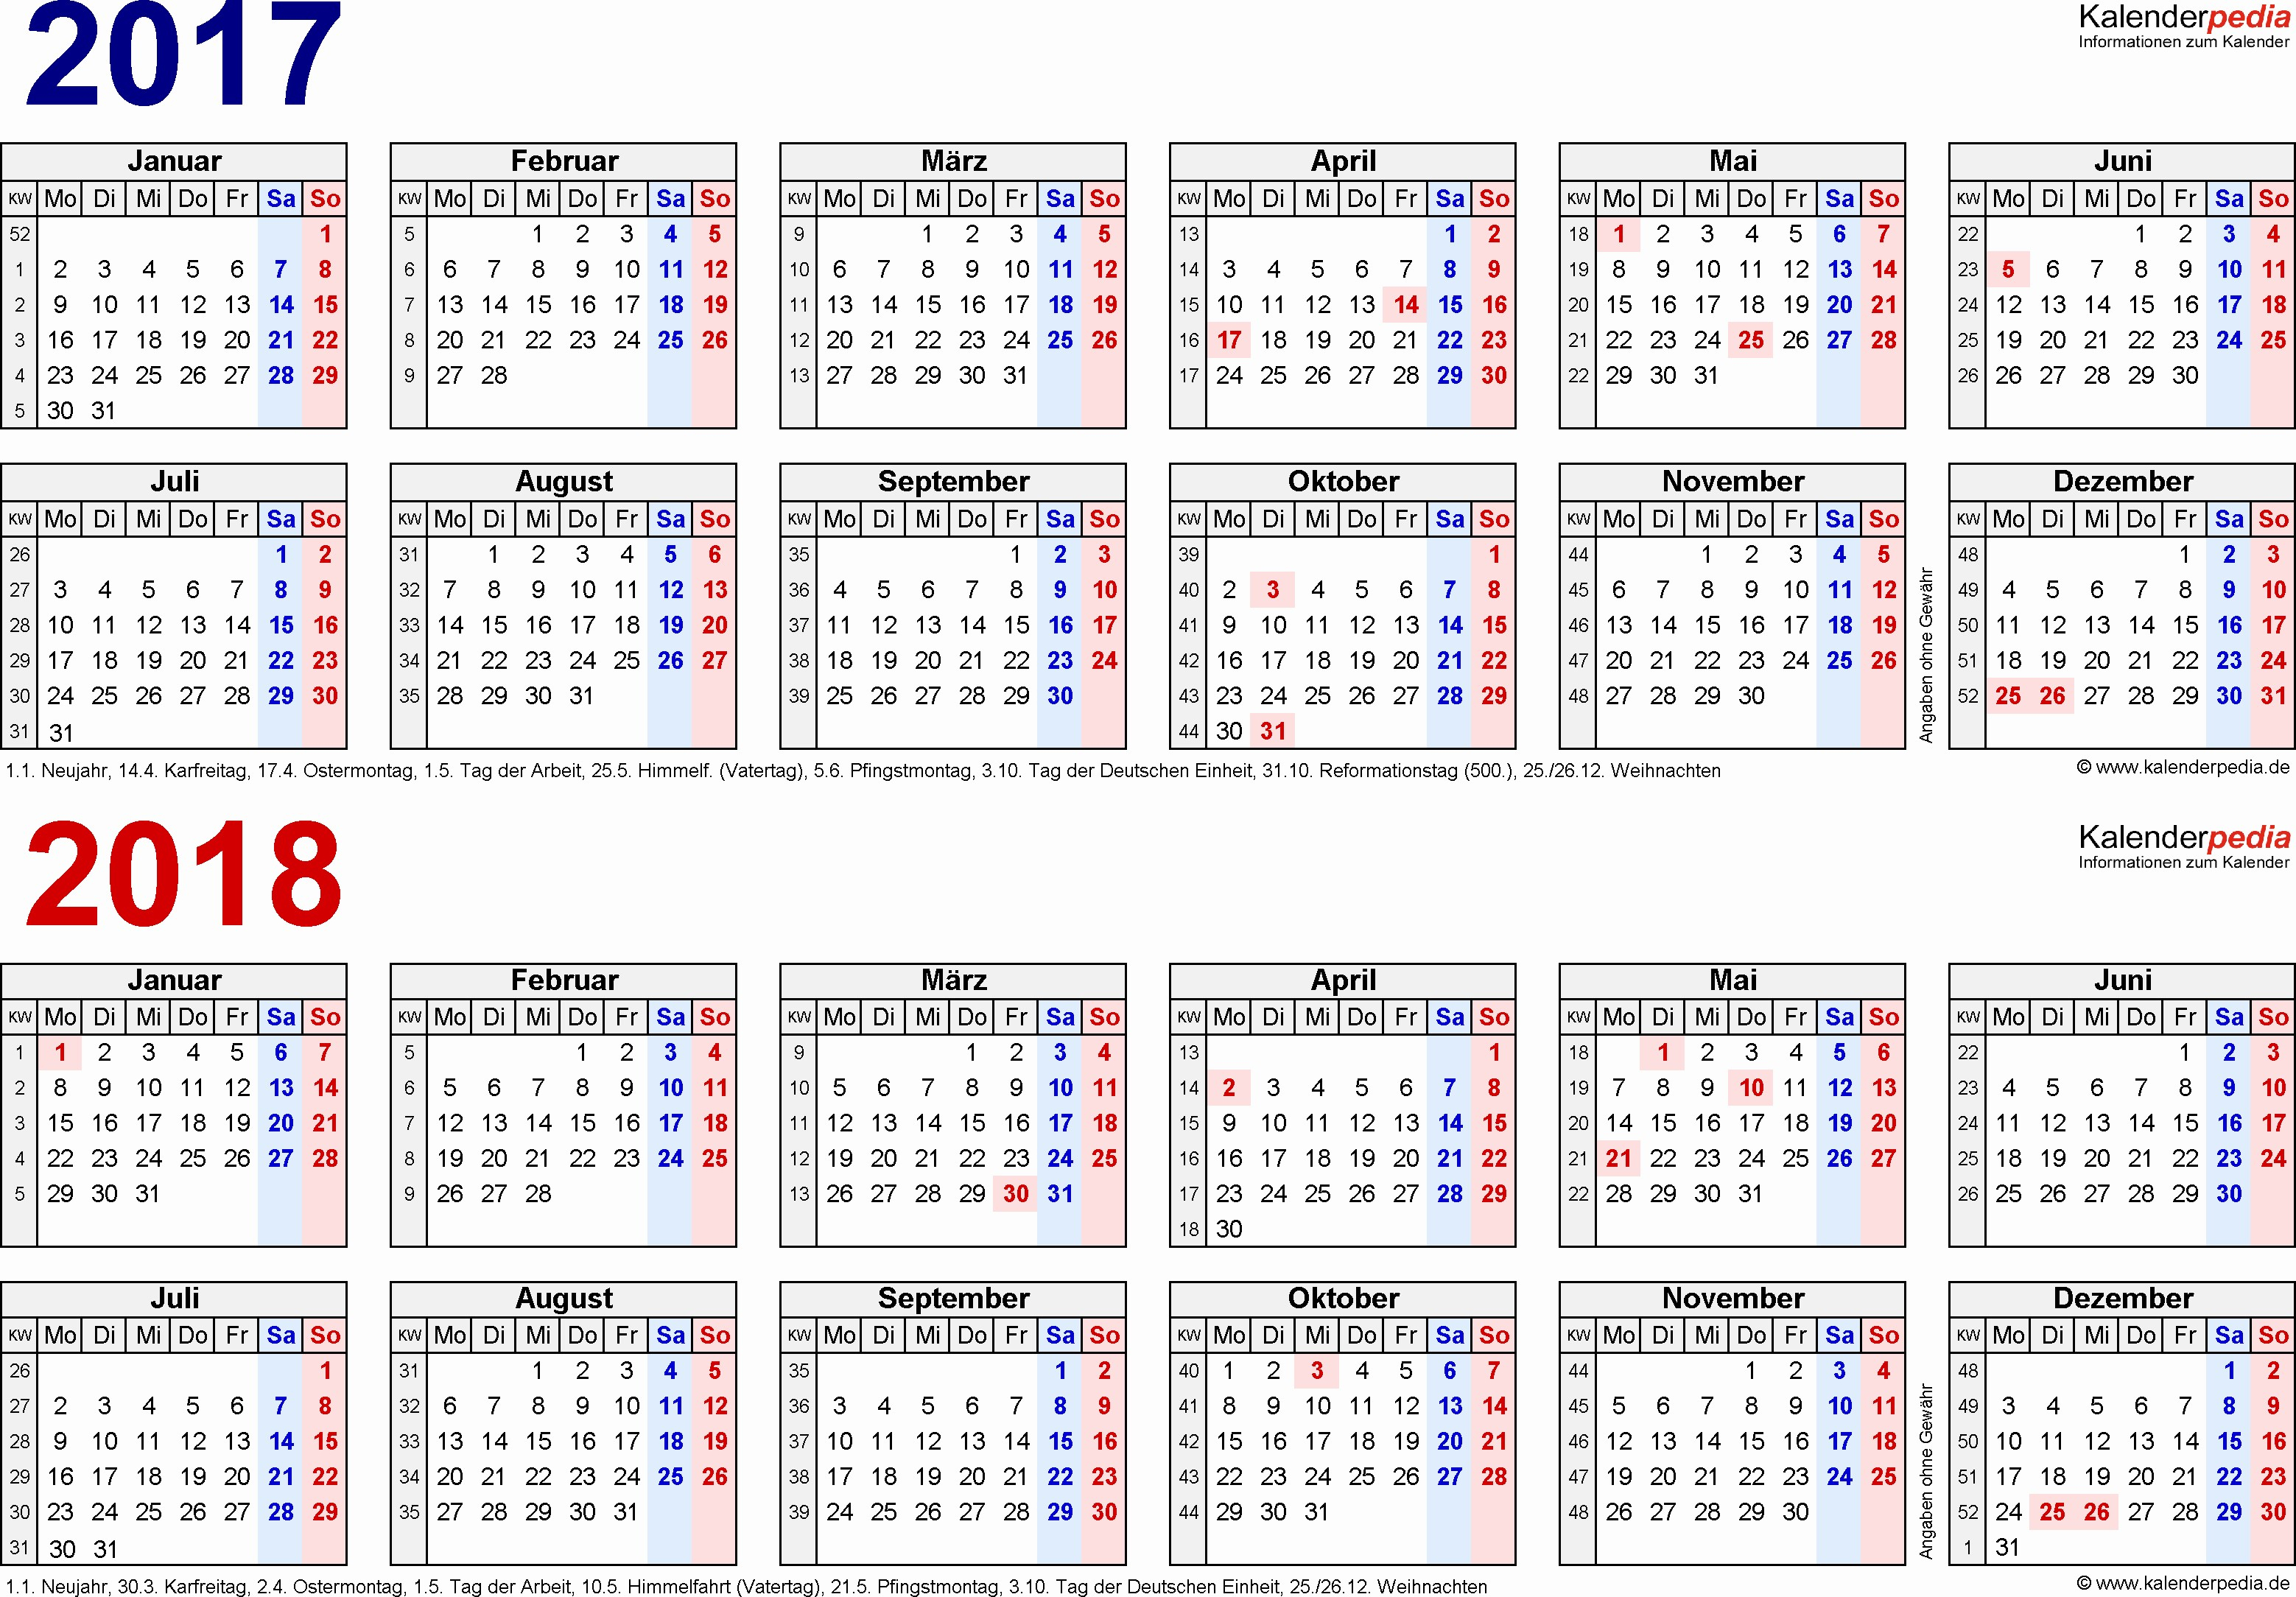 Depo Provera Calendar 2019 Printable Download For Free